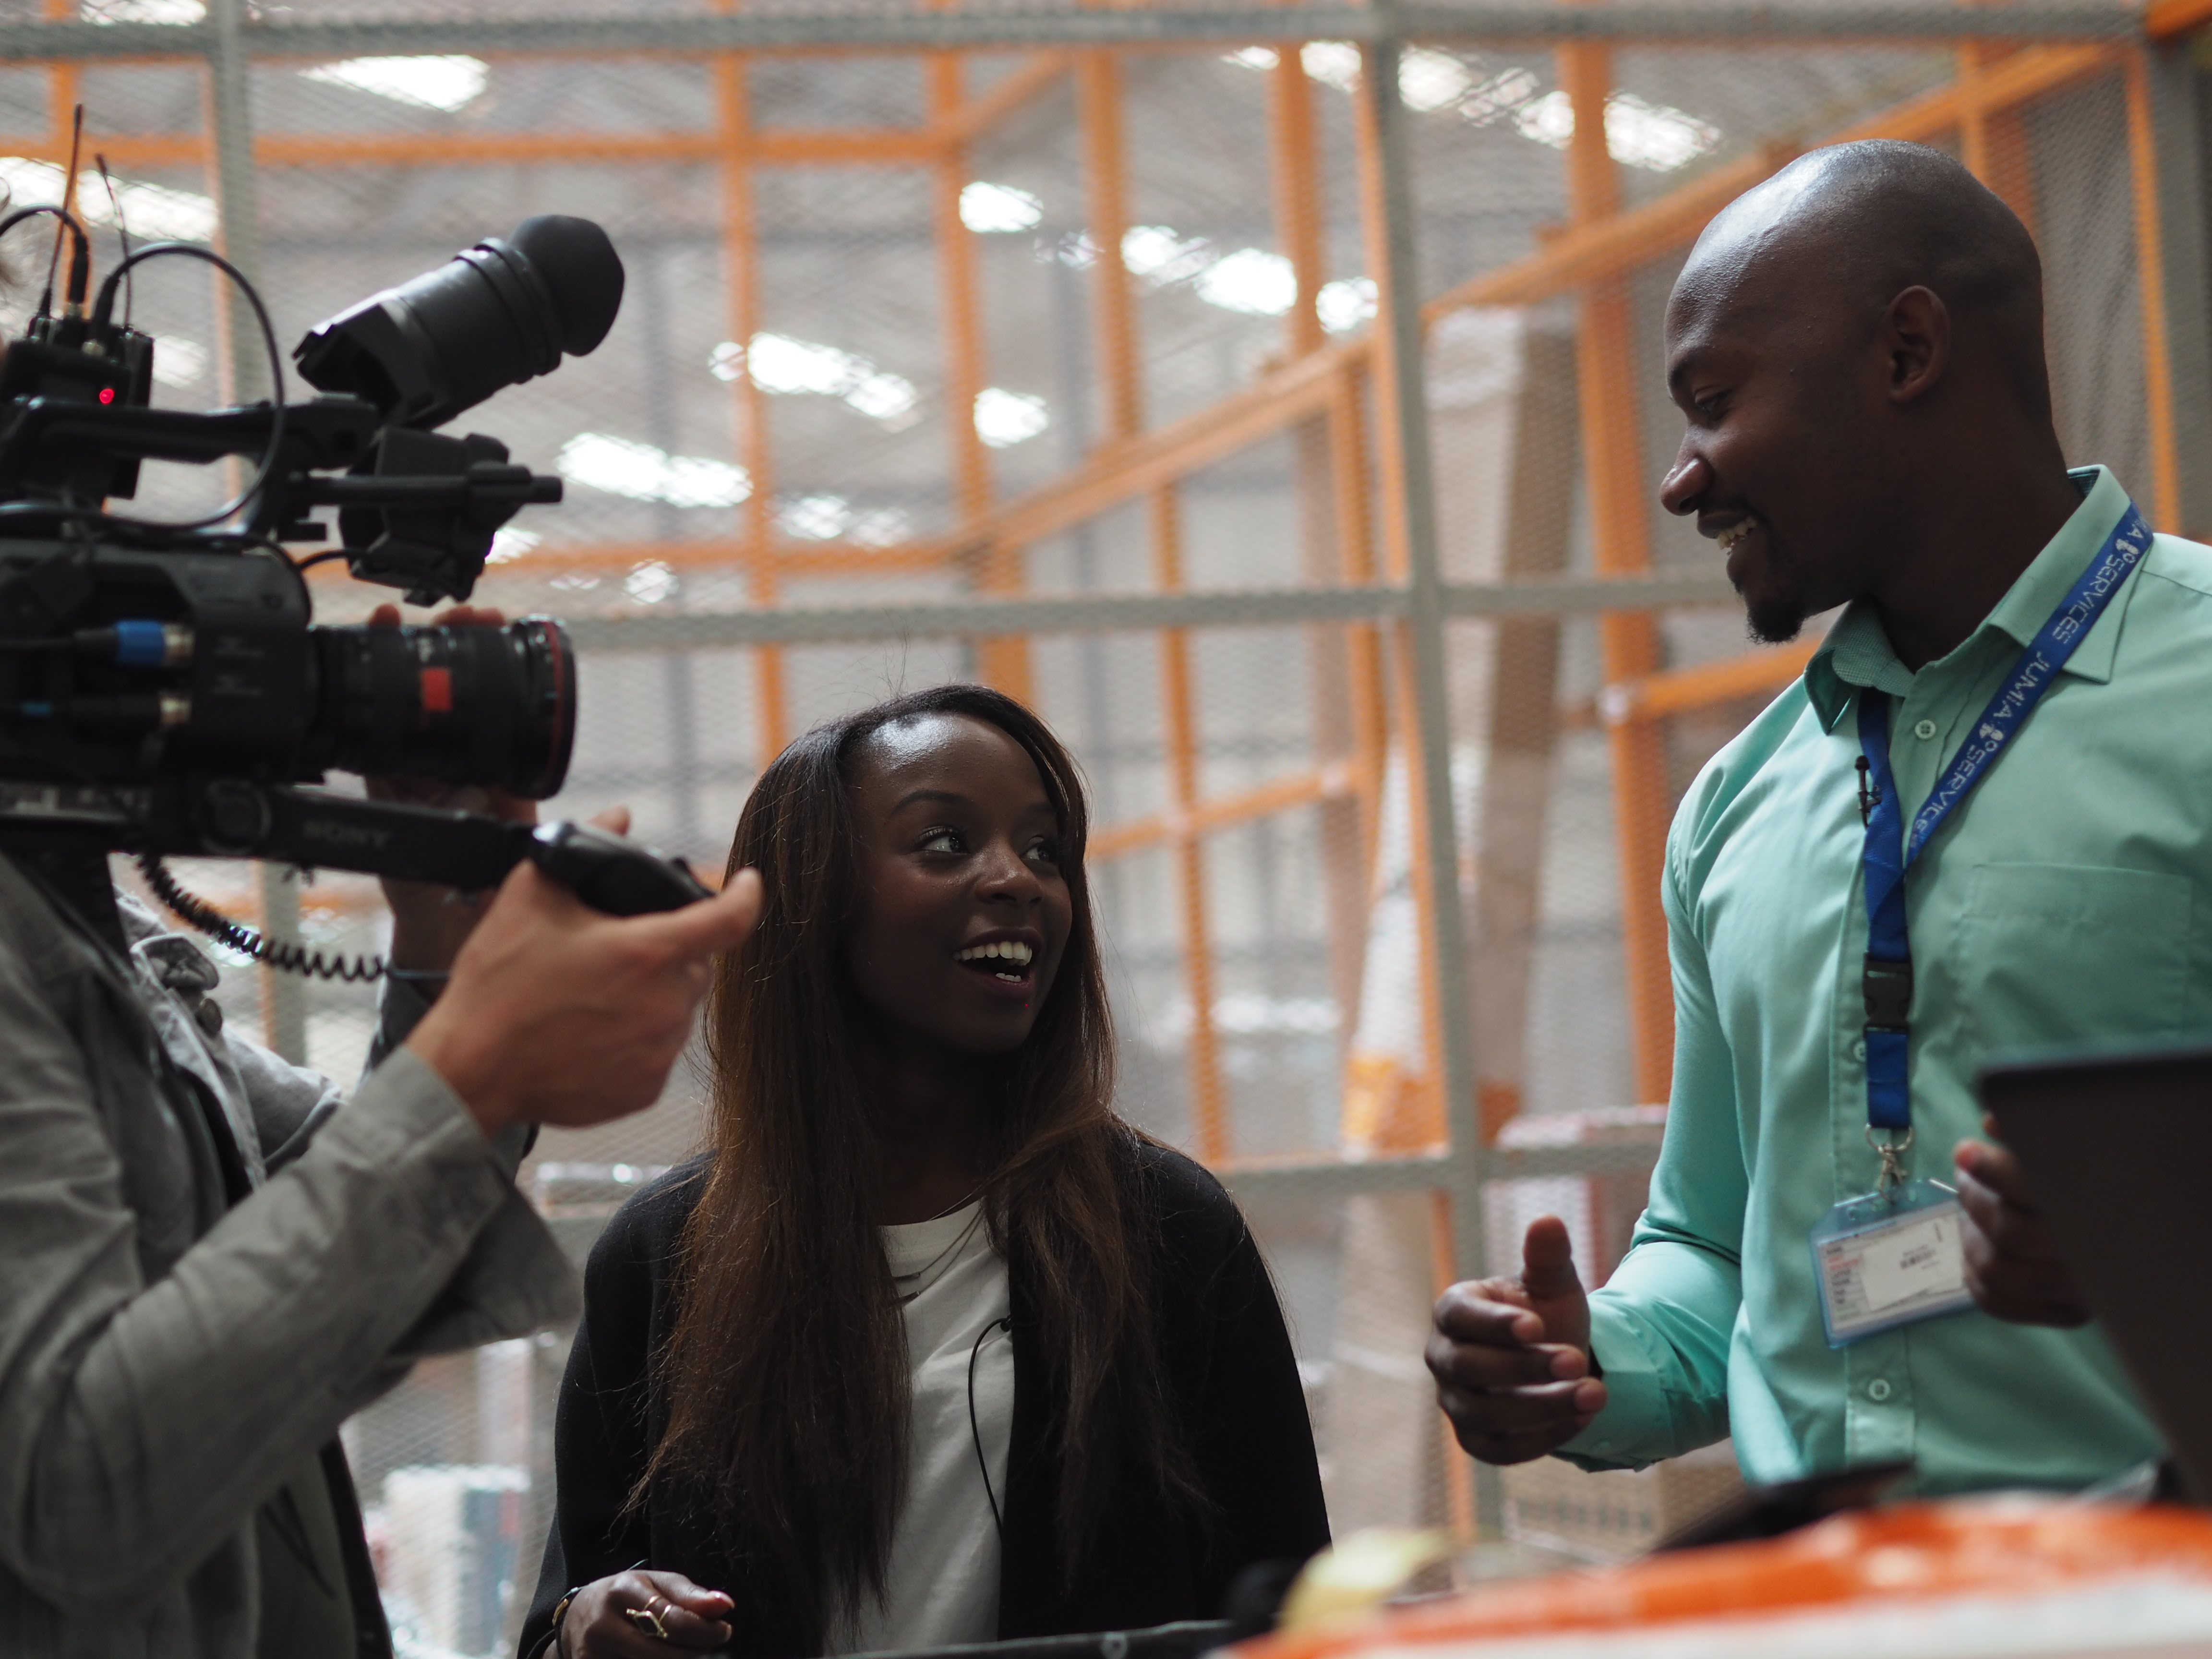 Tailored Business : The show about entrepreneurship in Africa